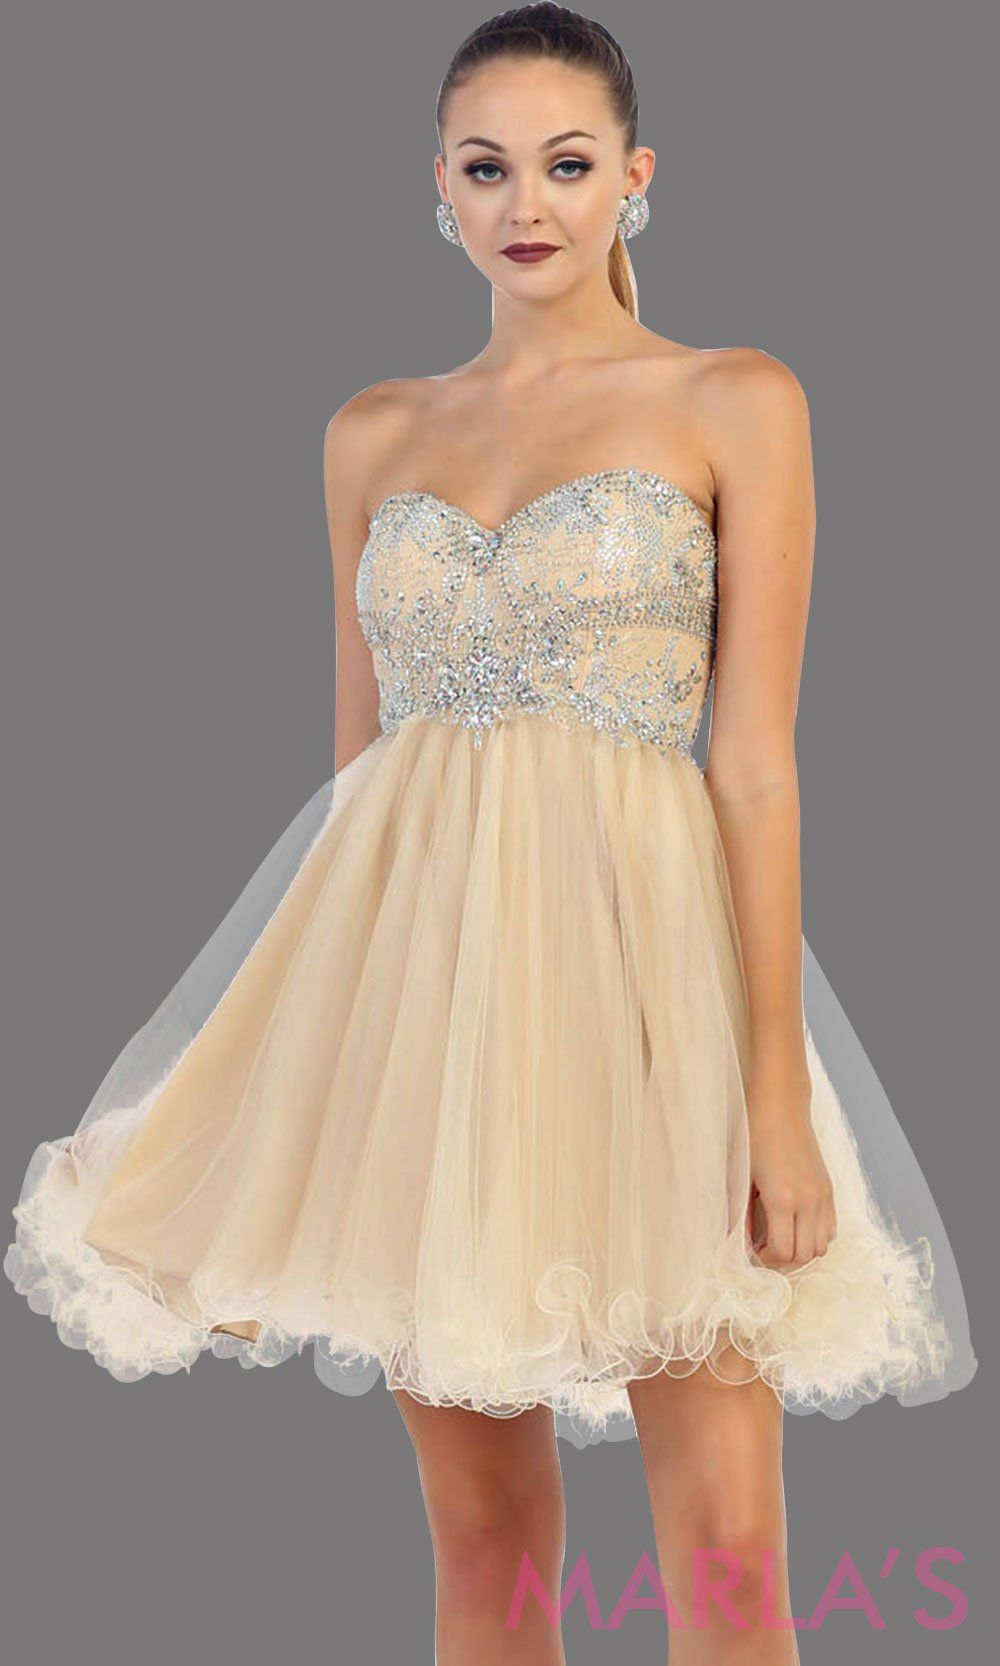 Short strapless puffy champagne dress. This short light gold grade 8 graduation dress has sequin bodice and corset back. This is perfect for homecoming, semi formal, bridal shower. Available in plus sizes.